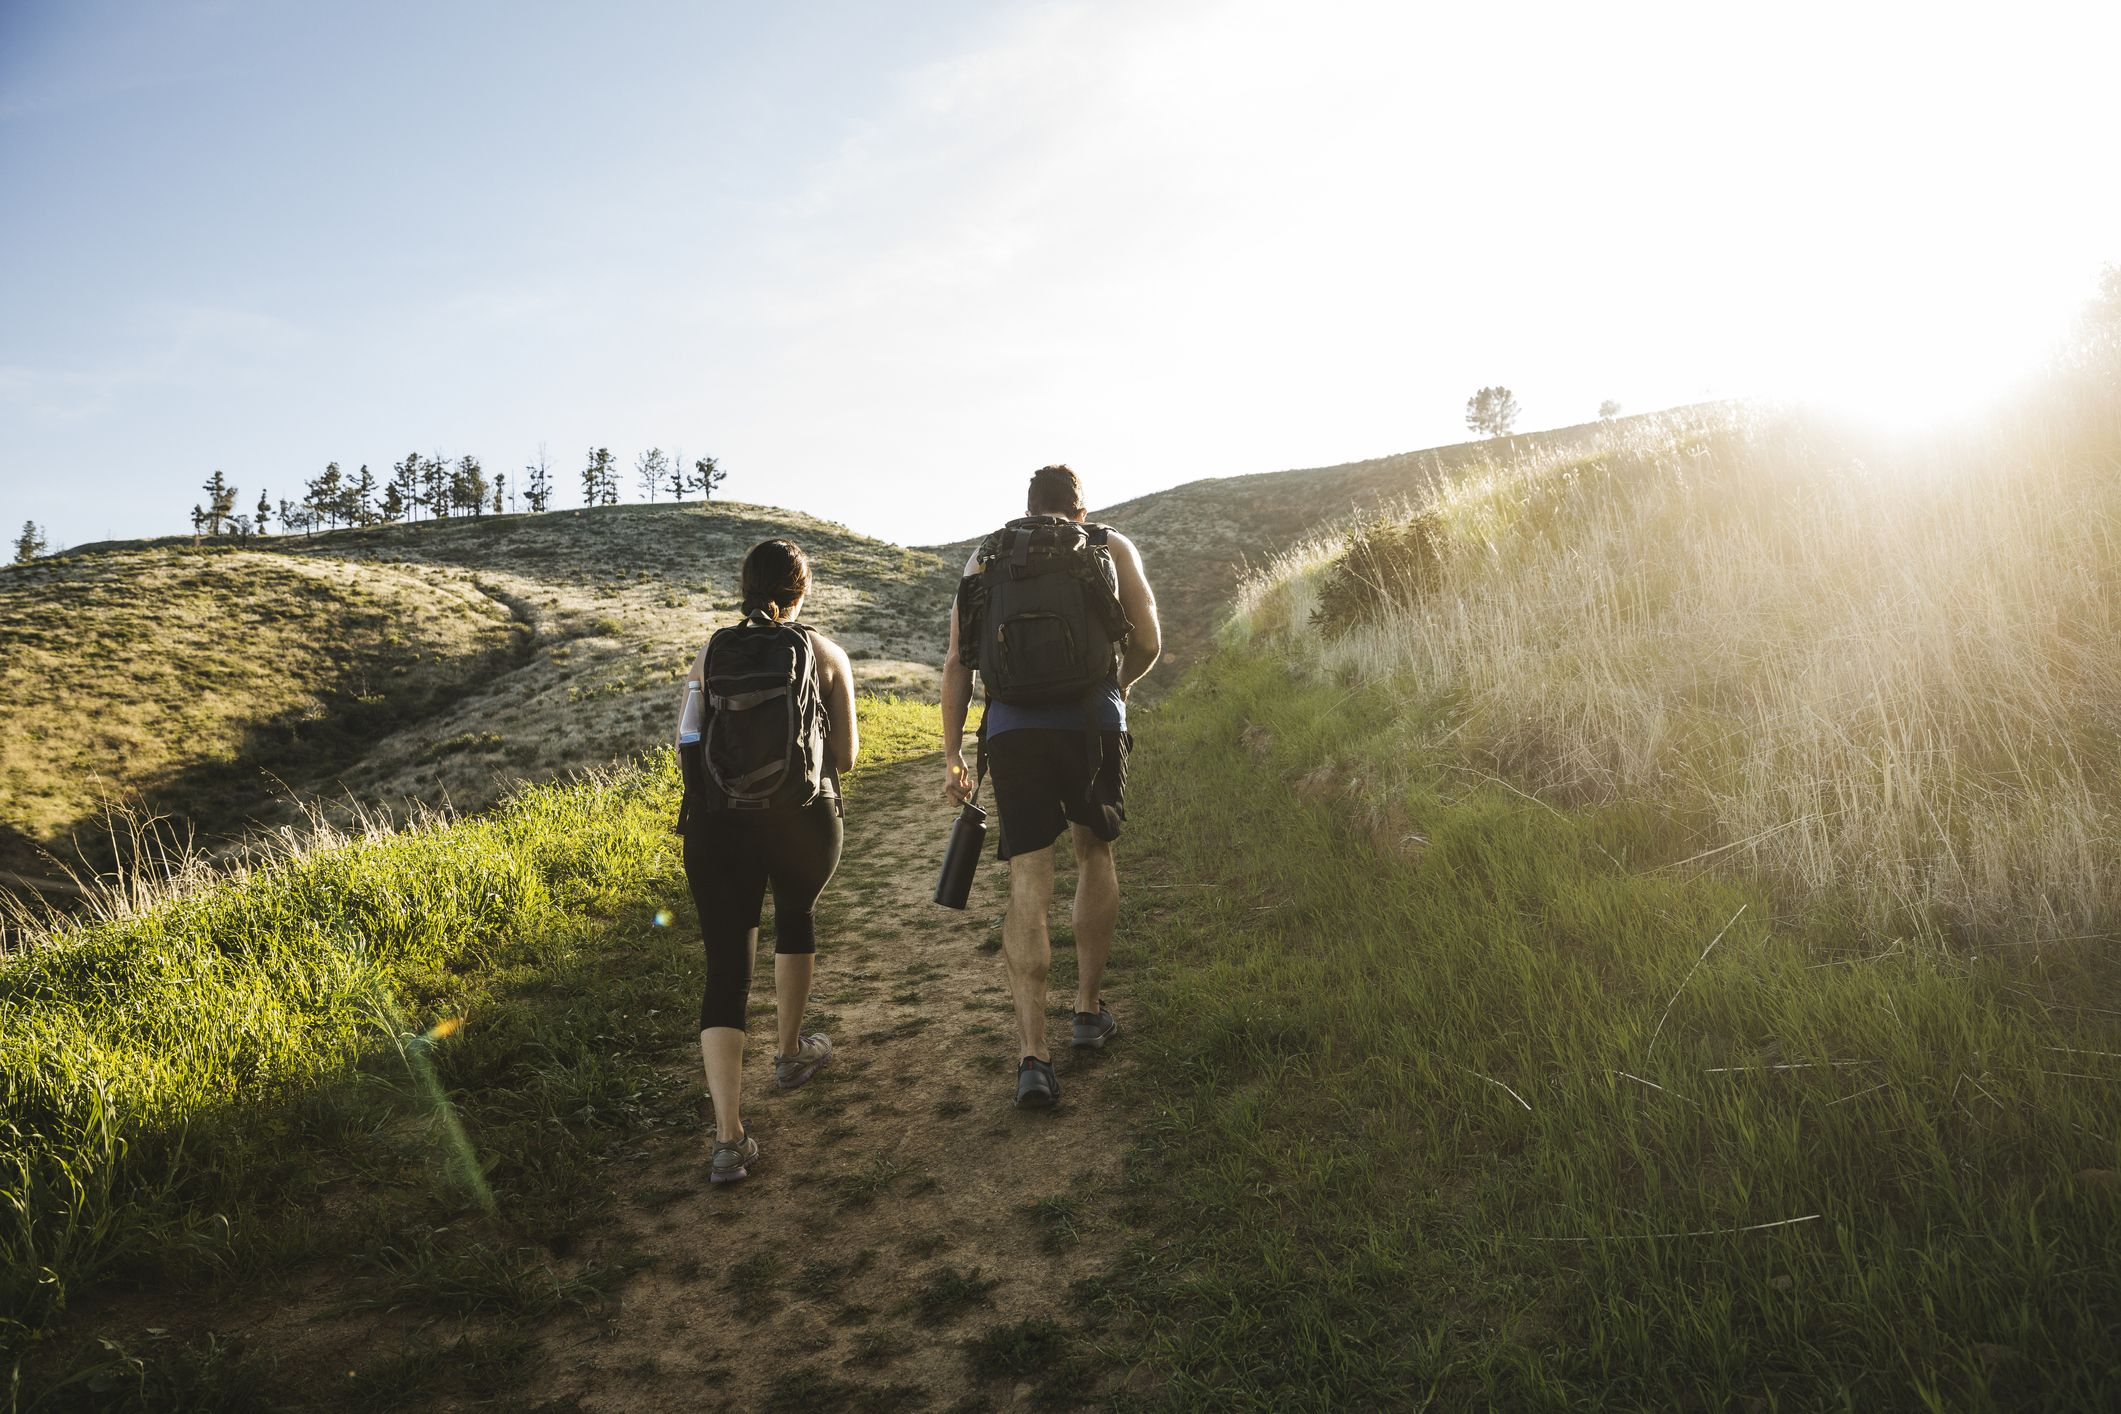 How to Figure Out Calories Burned While Hiking